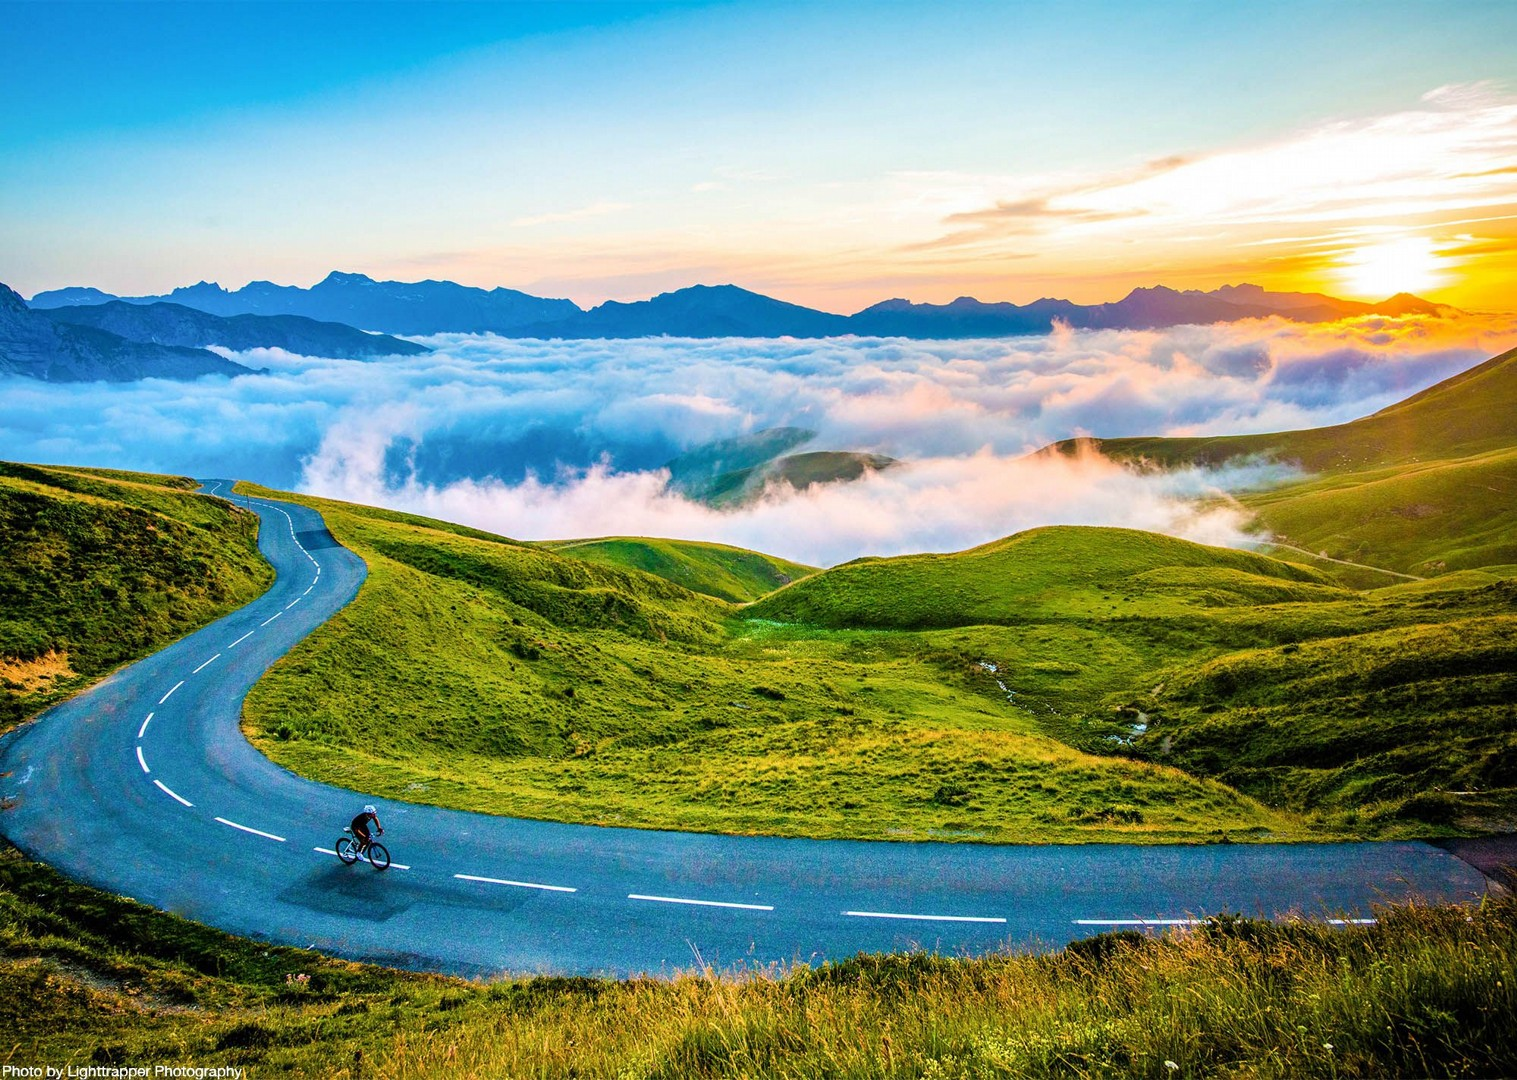 france-trans-pyrenees-challenge-guided-road-cycling-holiday.jpg - France - Trans Pyrenees Challenge - Guided Road Cycling Holiday - Road Cycling